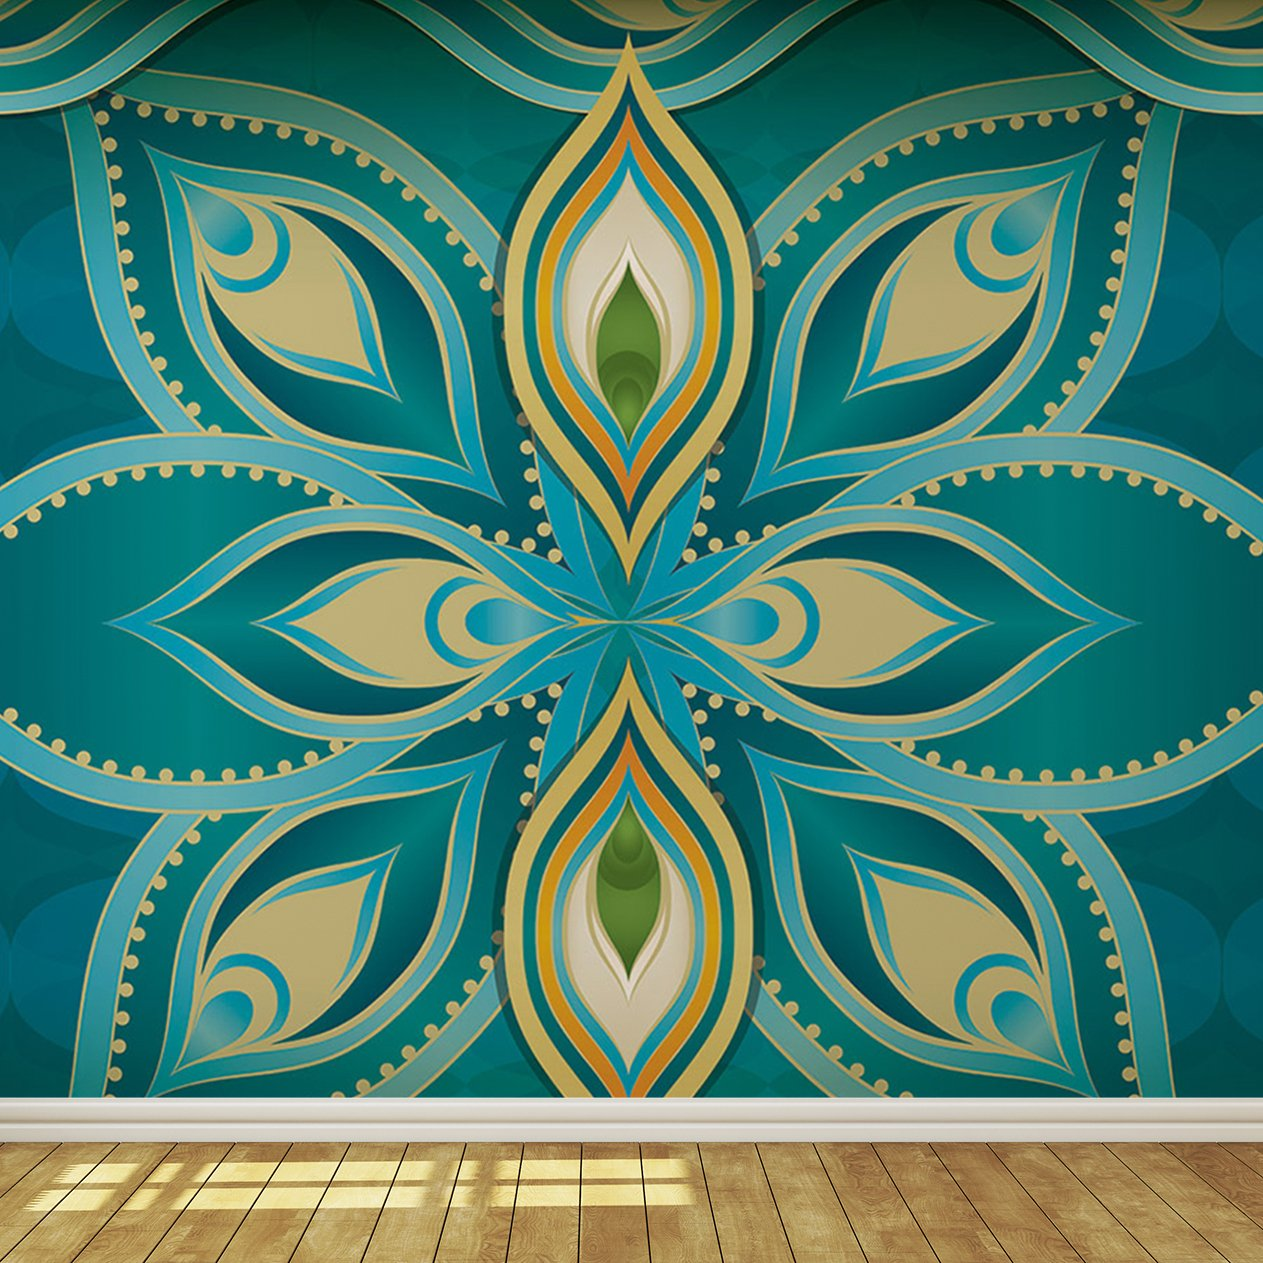 Blue Teal And Gold Exotic Indian Pattern Wallpaper Mural Amazoncouk DIY Tools